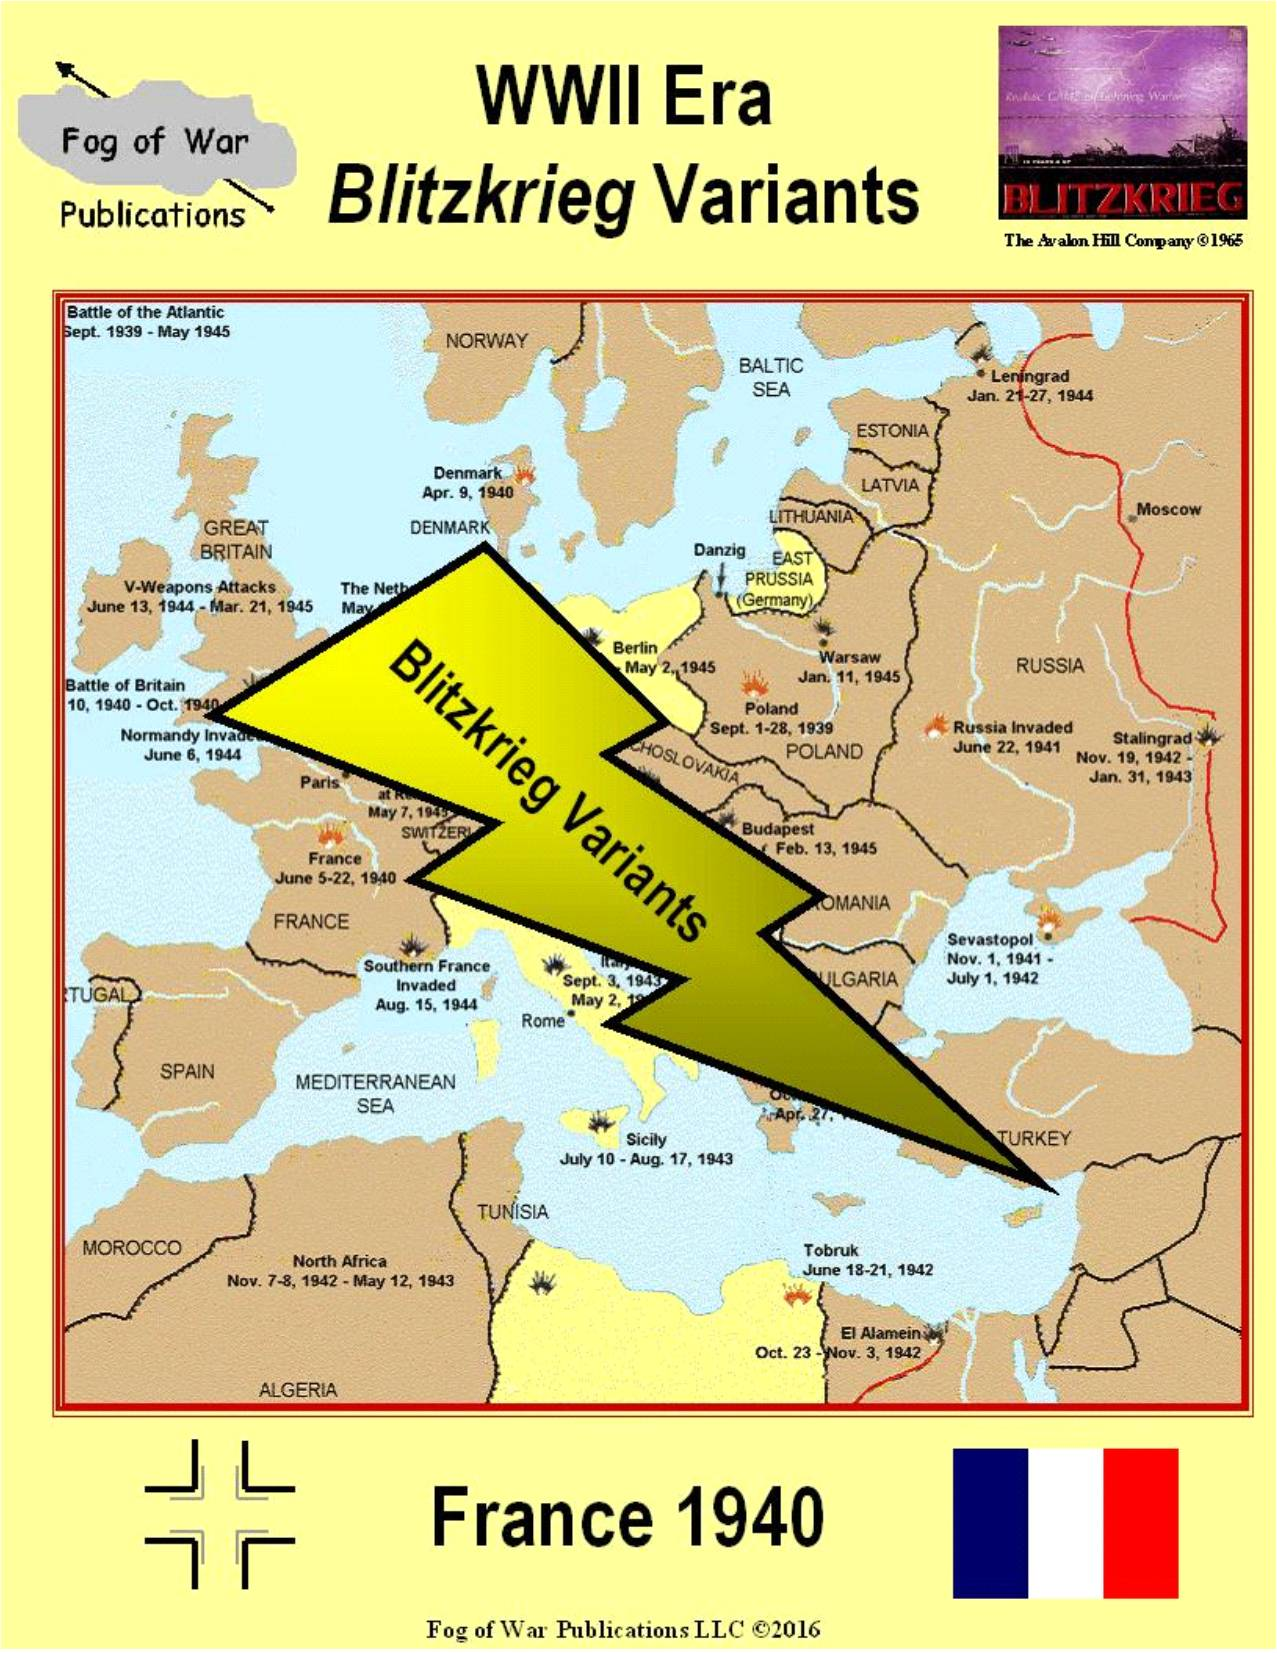 Map Of France 1940.Wwii Blitzkrieg Variant France 1940